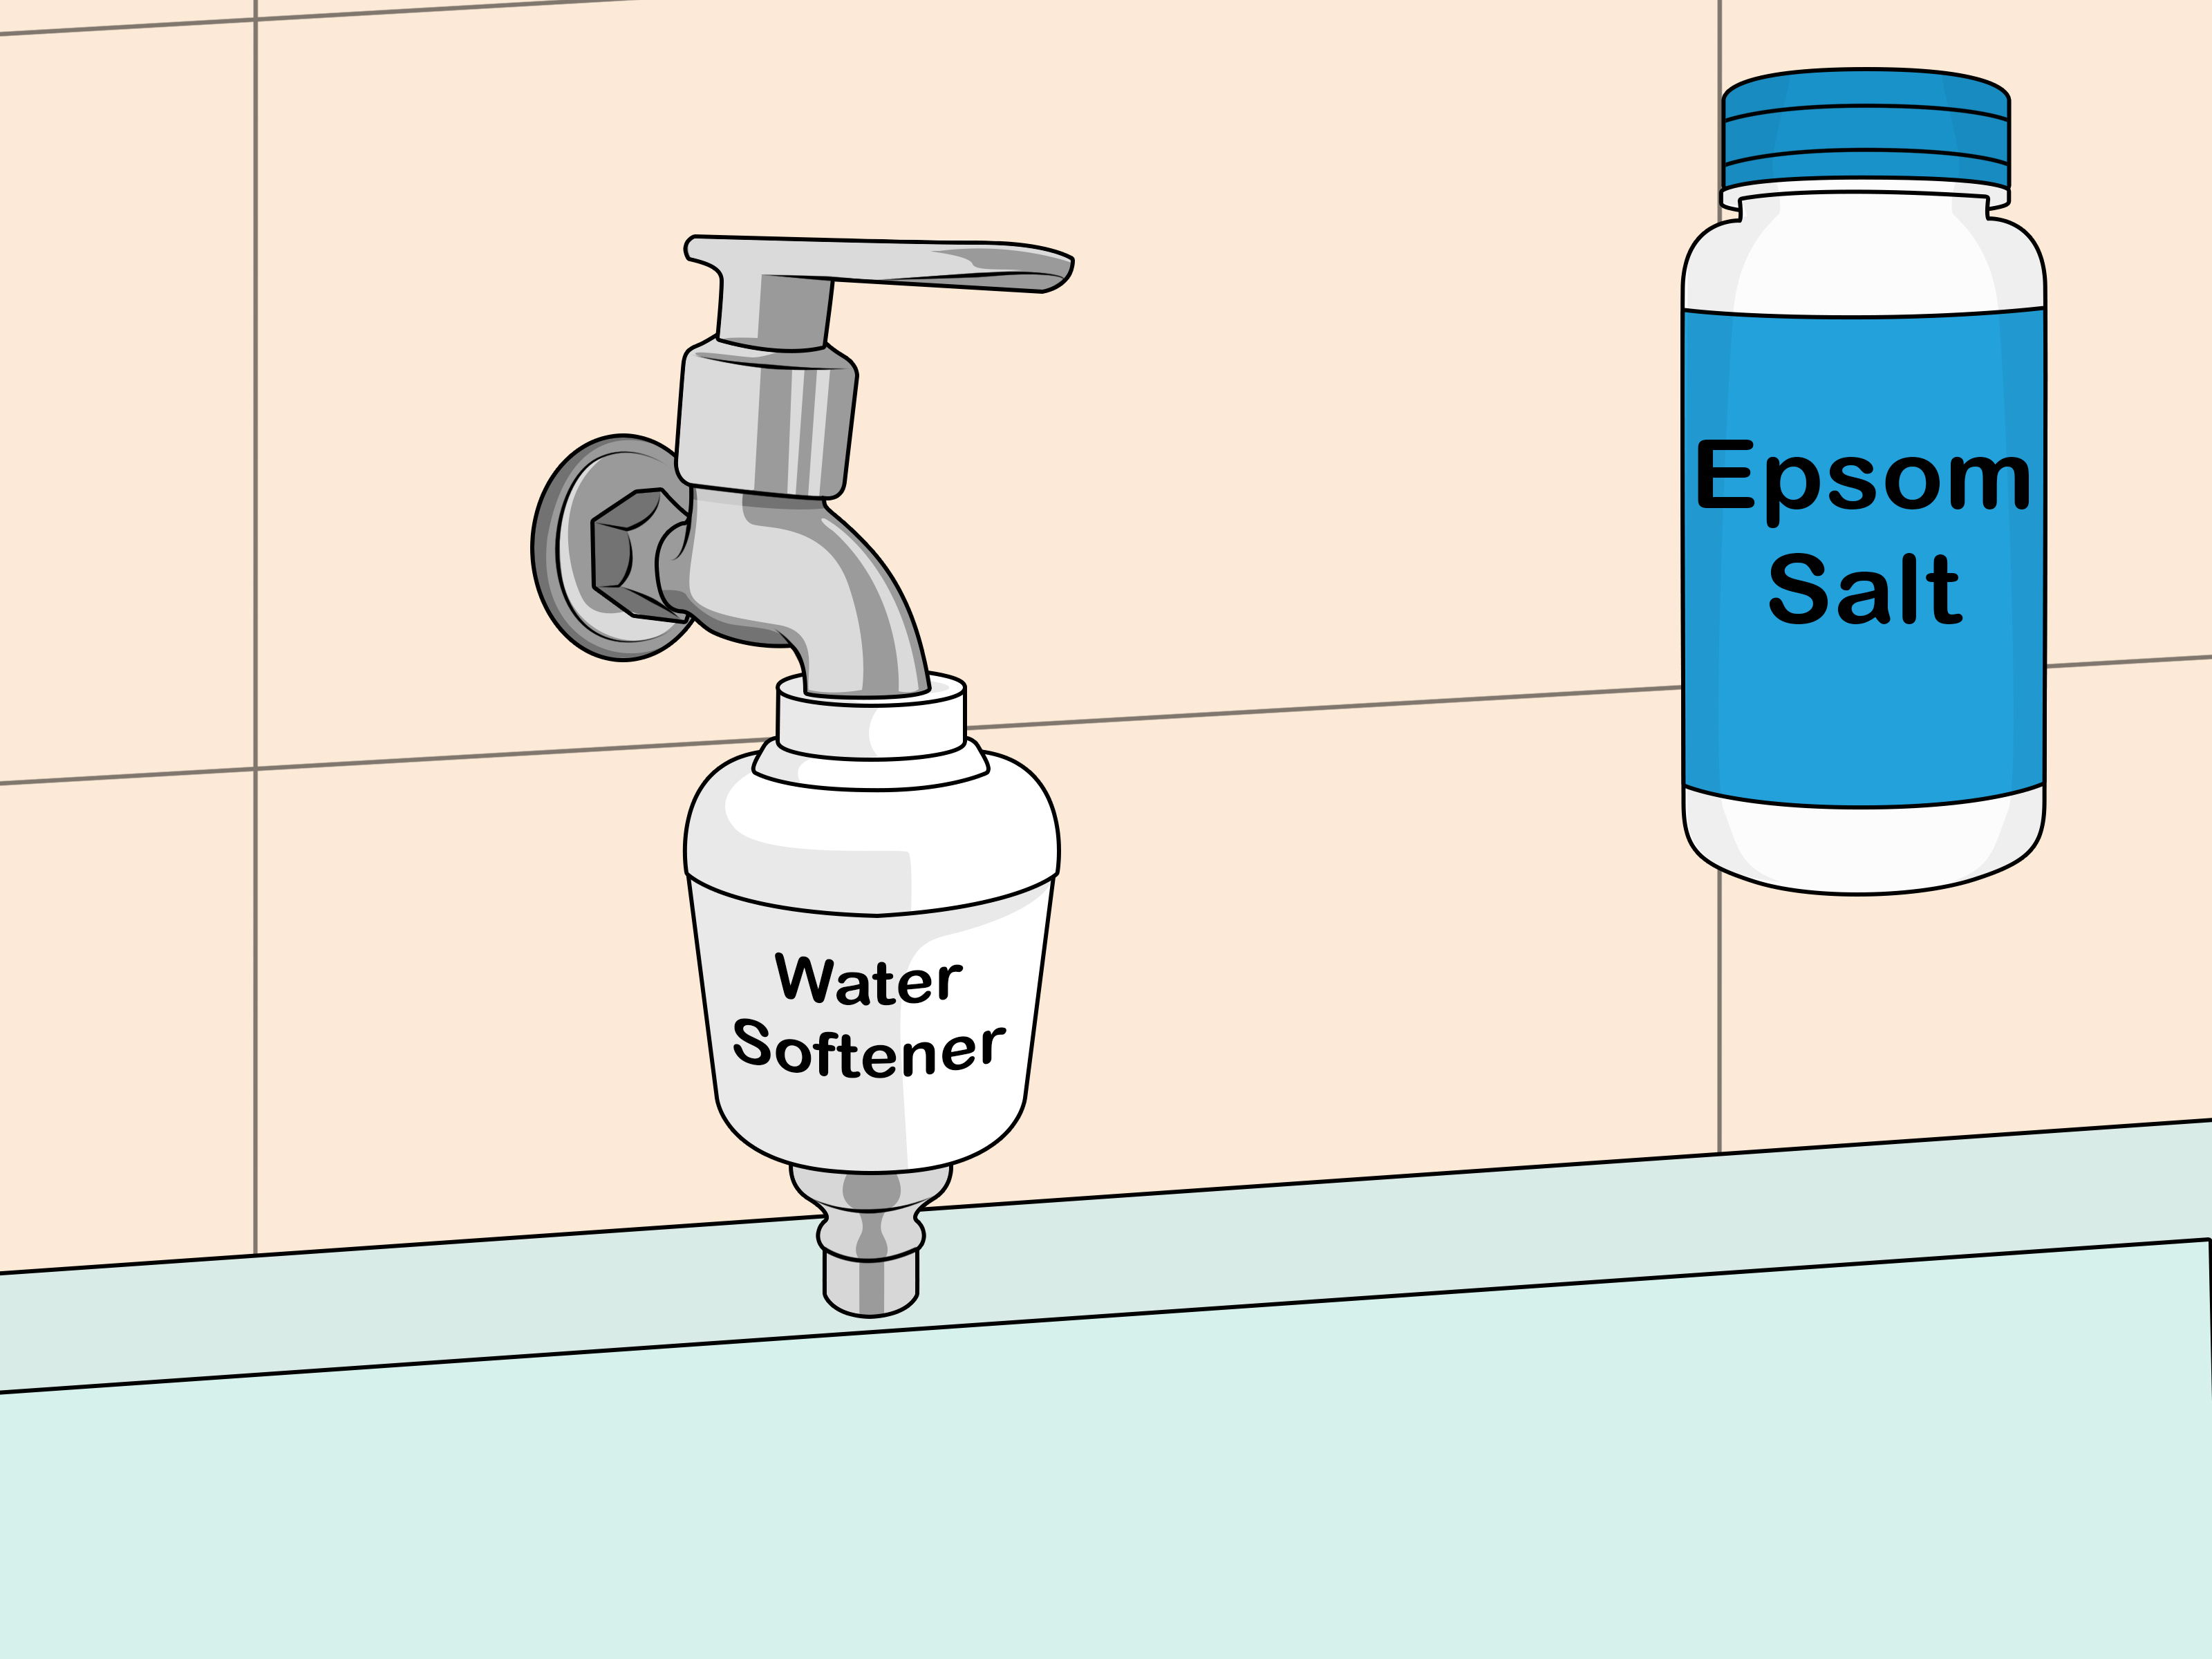 Best Way To Clean Countertops 3 Ways To Clean Fiberglass Bathroom Surfaces Wikihow